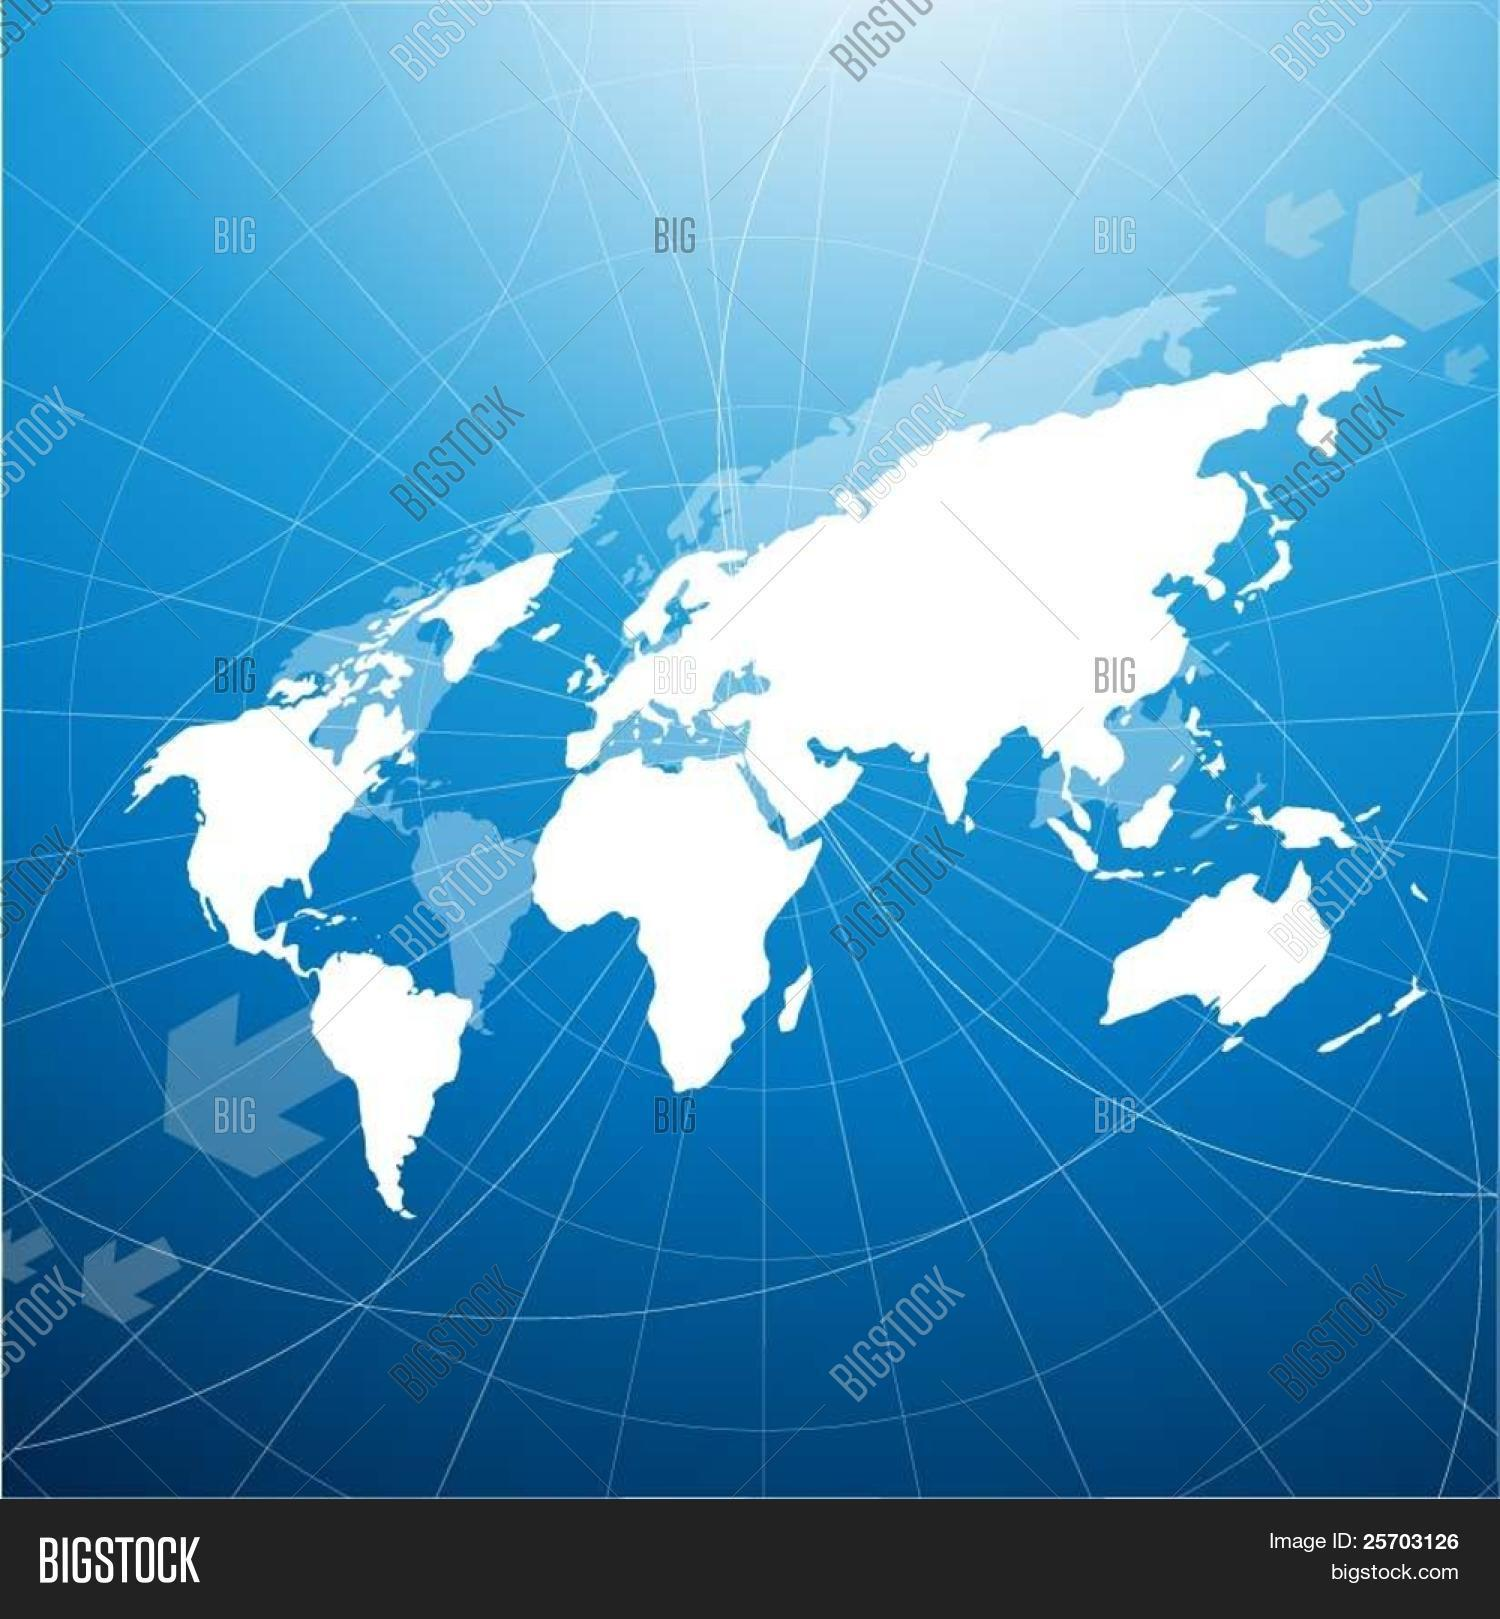 Perspective world map vector photo free trial bigstock perspective world map gumiabroncs Images